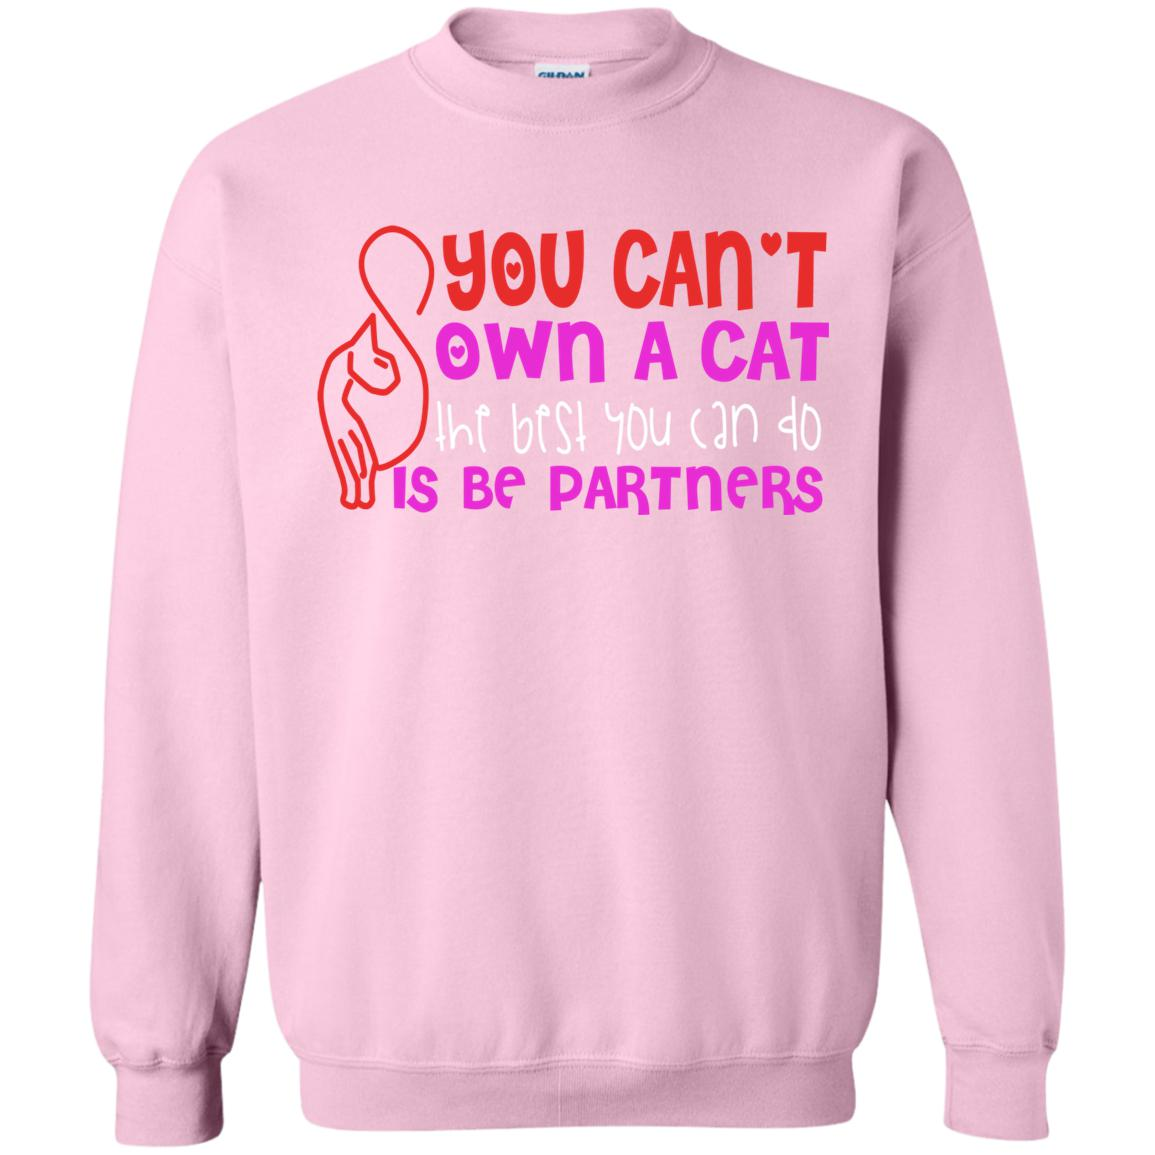 YOU CAN'T OWN A CAT 😻 SWEATSHIRT